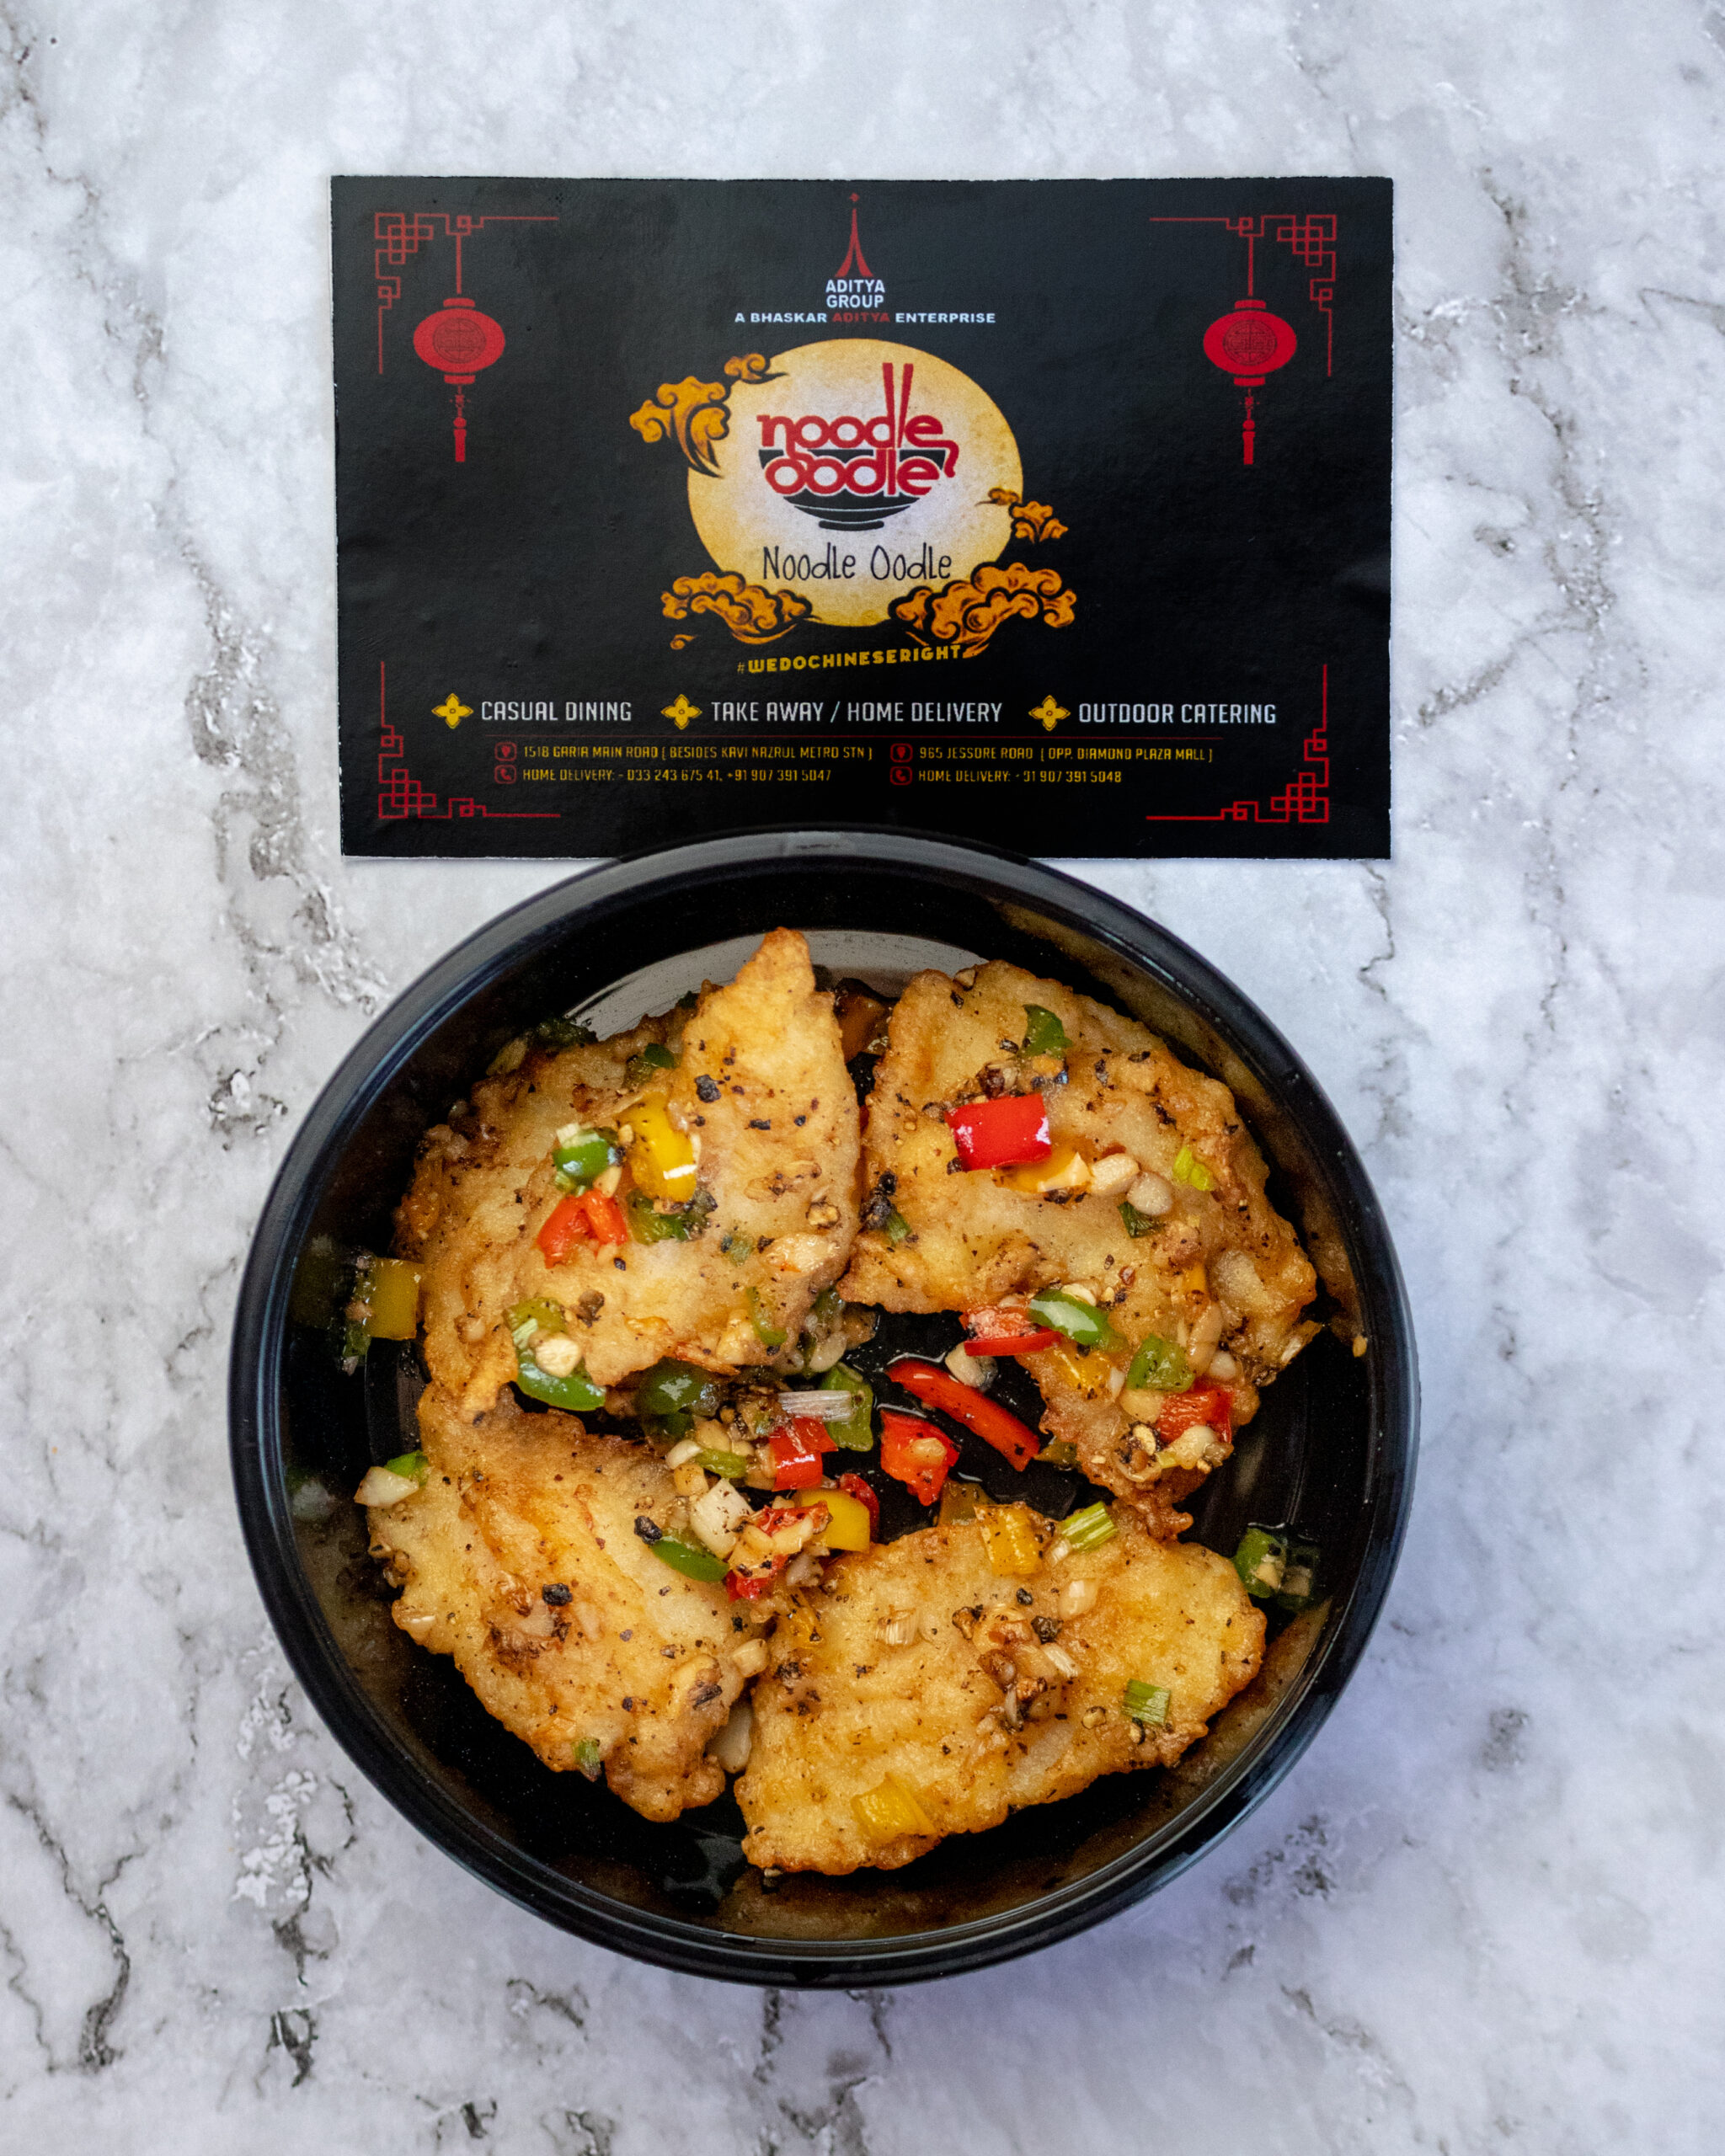 Save your Penny & Order from Many Combo Deals by Noodle Oodle